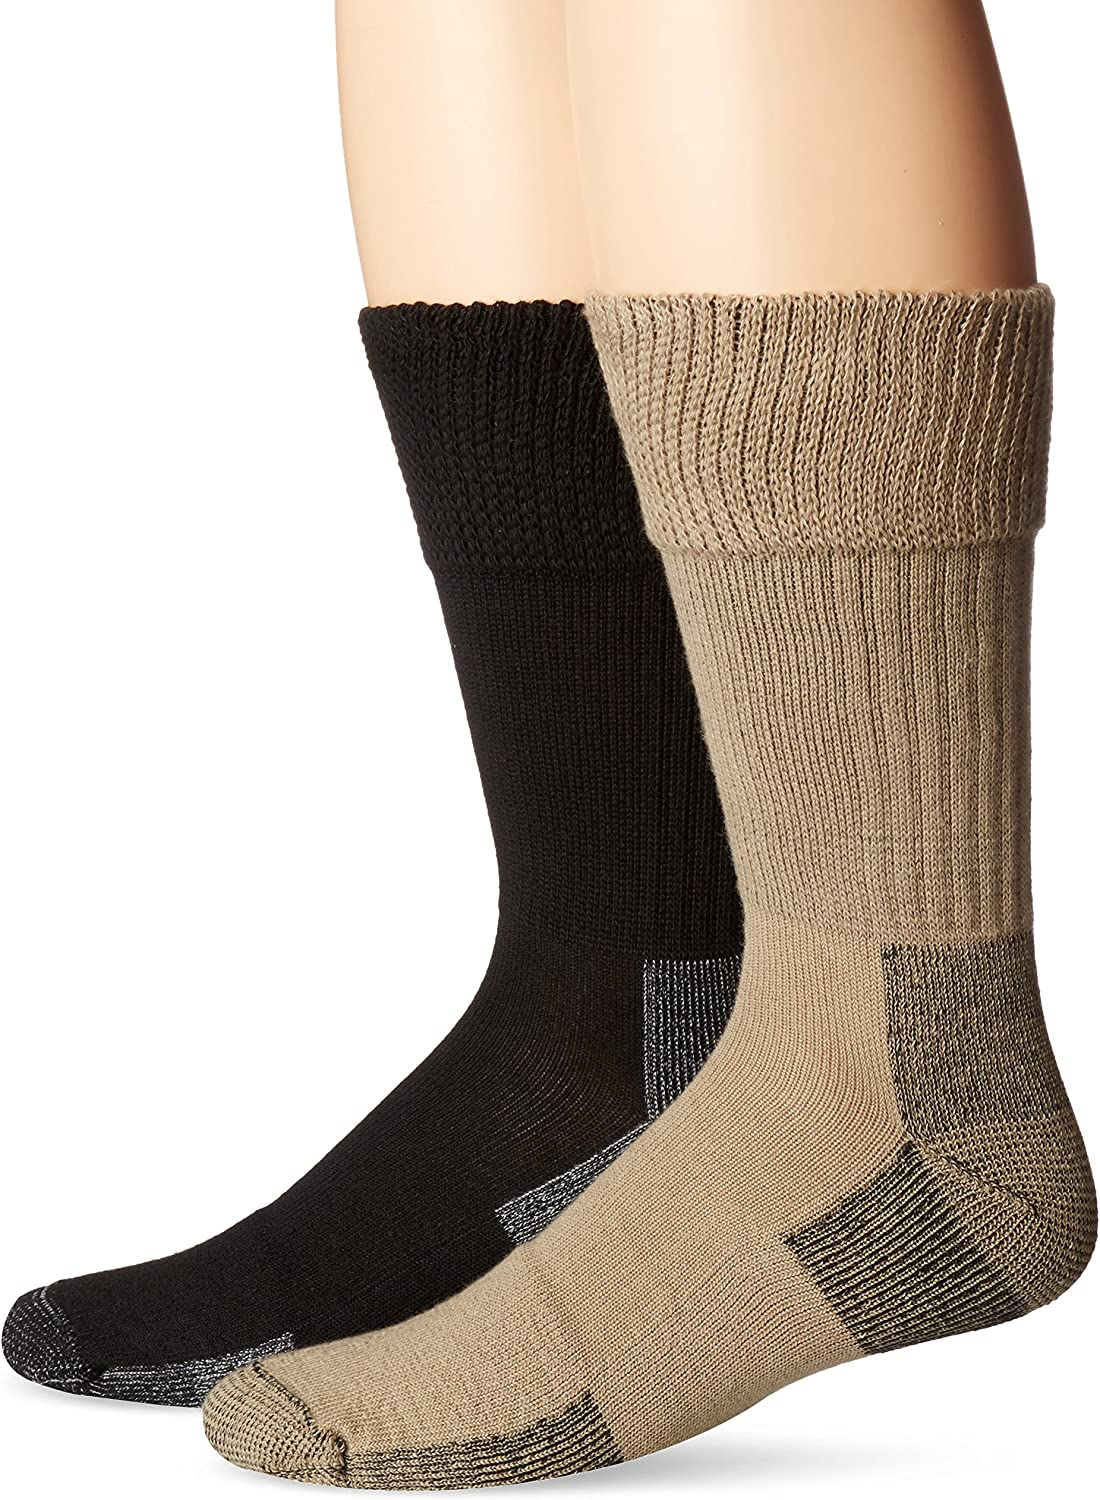 Dr. Scholl's Men's 2 Pack Non-Binding Diabetes and Circulatory Odor Resistant Crew Socks